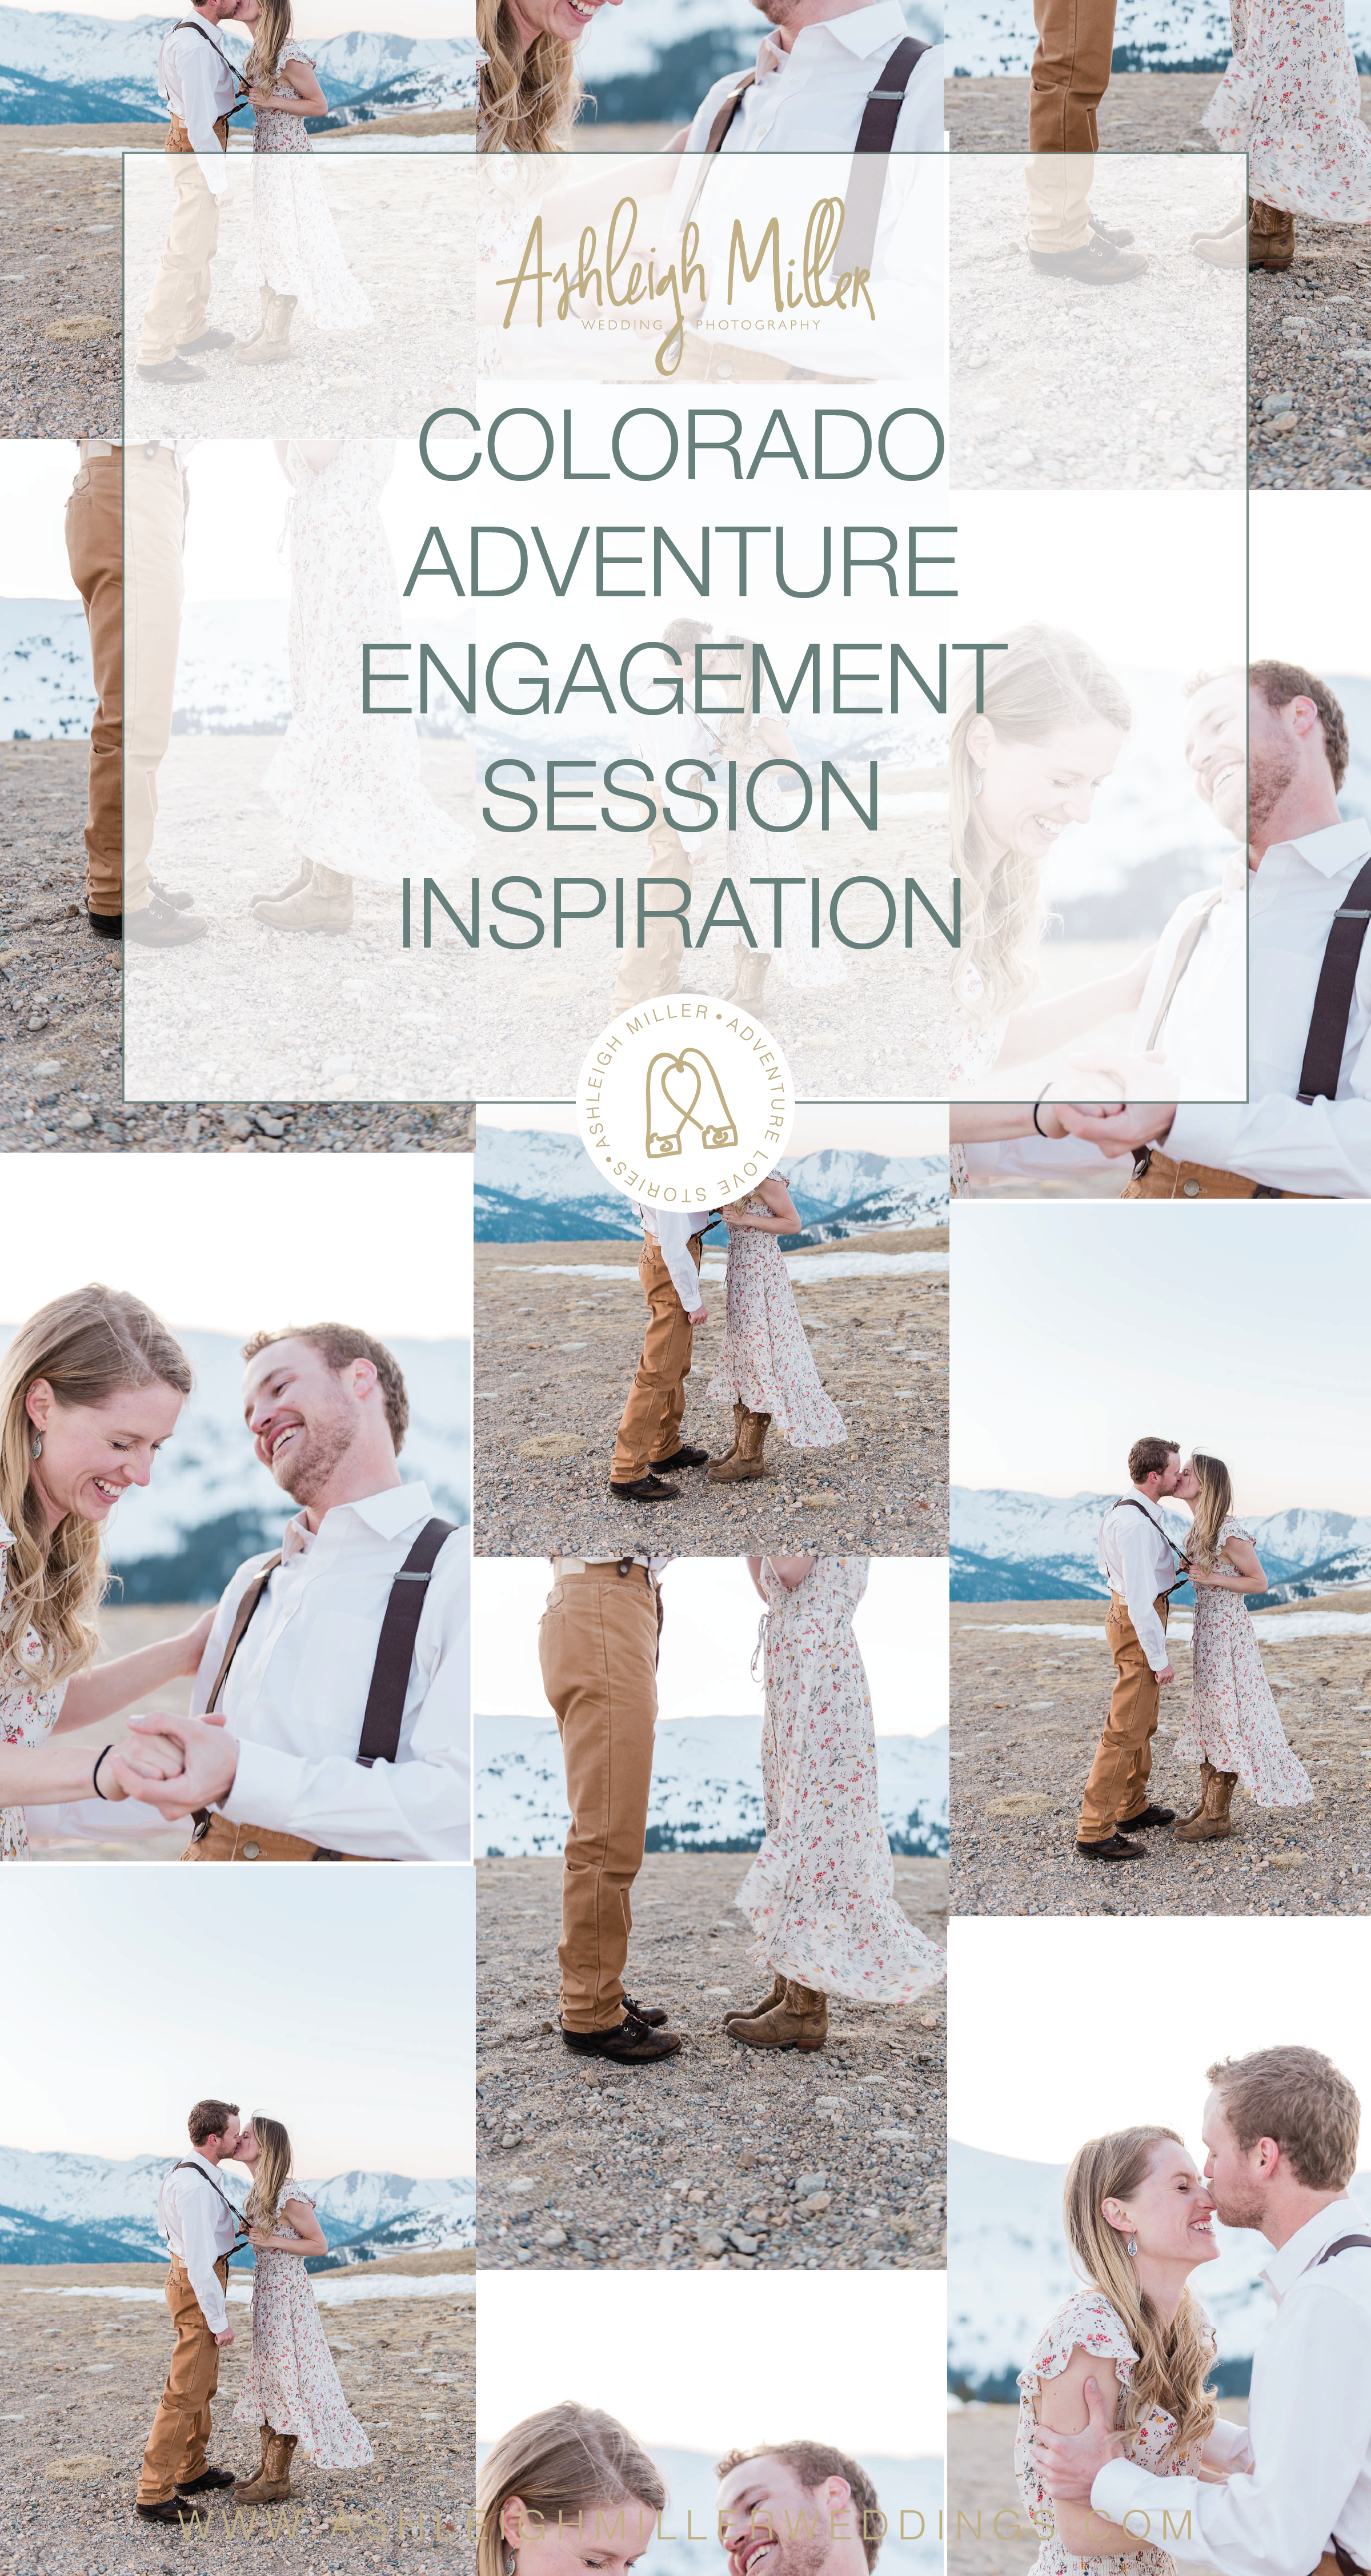 Colorado adventure engagement sessions inspiration on a mountaintop. This Loveland Engagment Session was perfect with dresses, suspenders, alpine glow, forests, rivers and love. Ashleigh Miller Wedding and Elopement Photographer serving Denver, Breckenridge, Summit, Dillion, Silverthorn, Telluride, Ouray and Boulder.